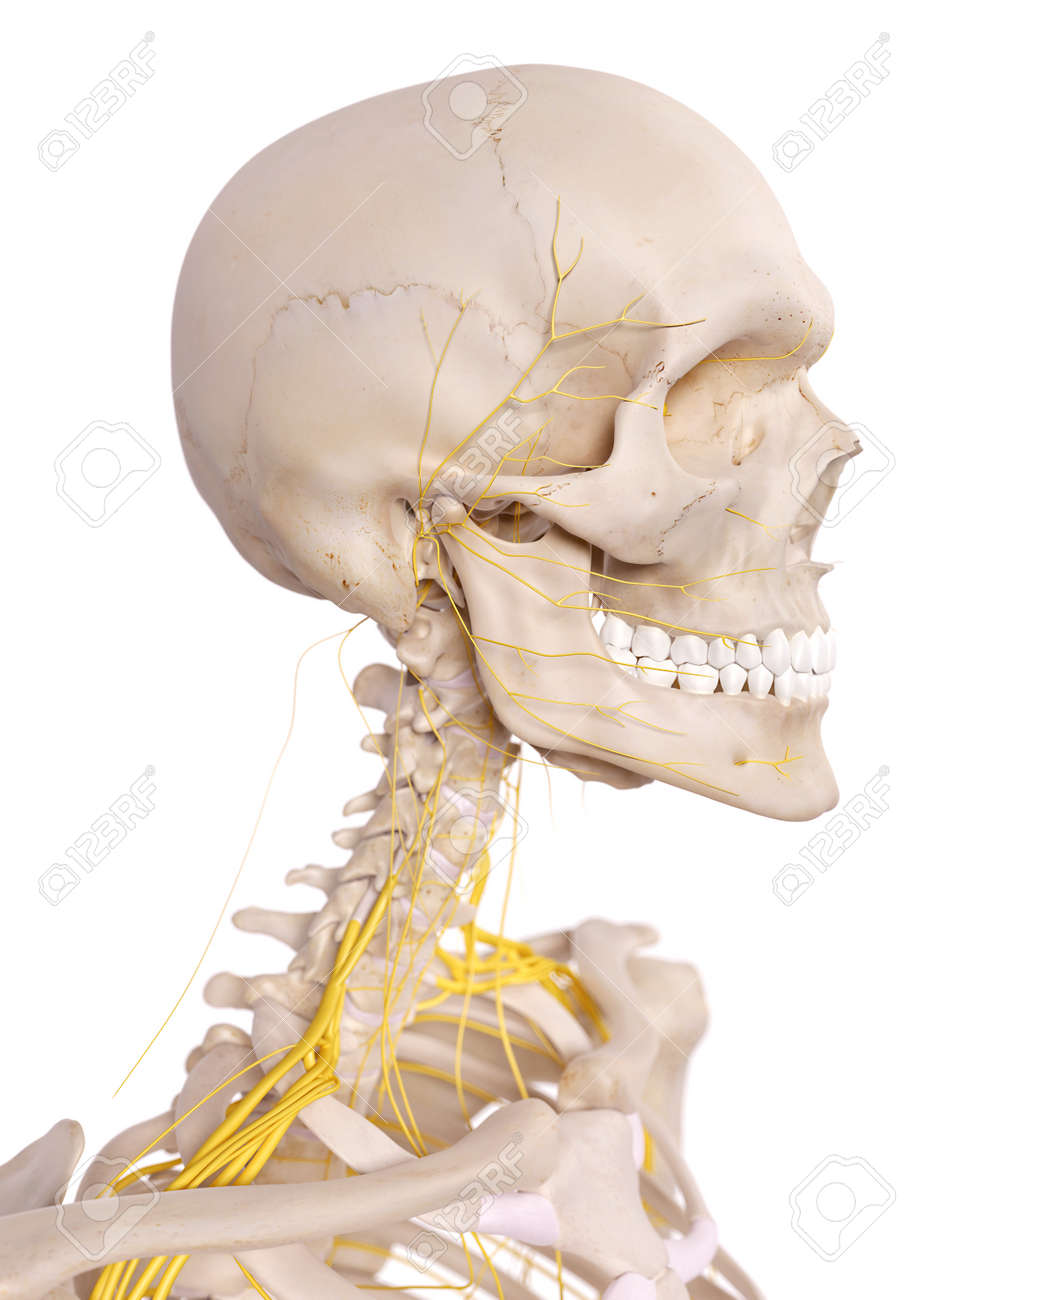 Medically Accurate Illustration Of The Cervical Nerves Stock Photo ...